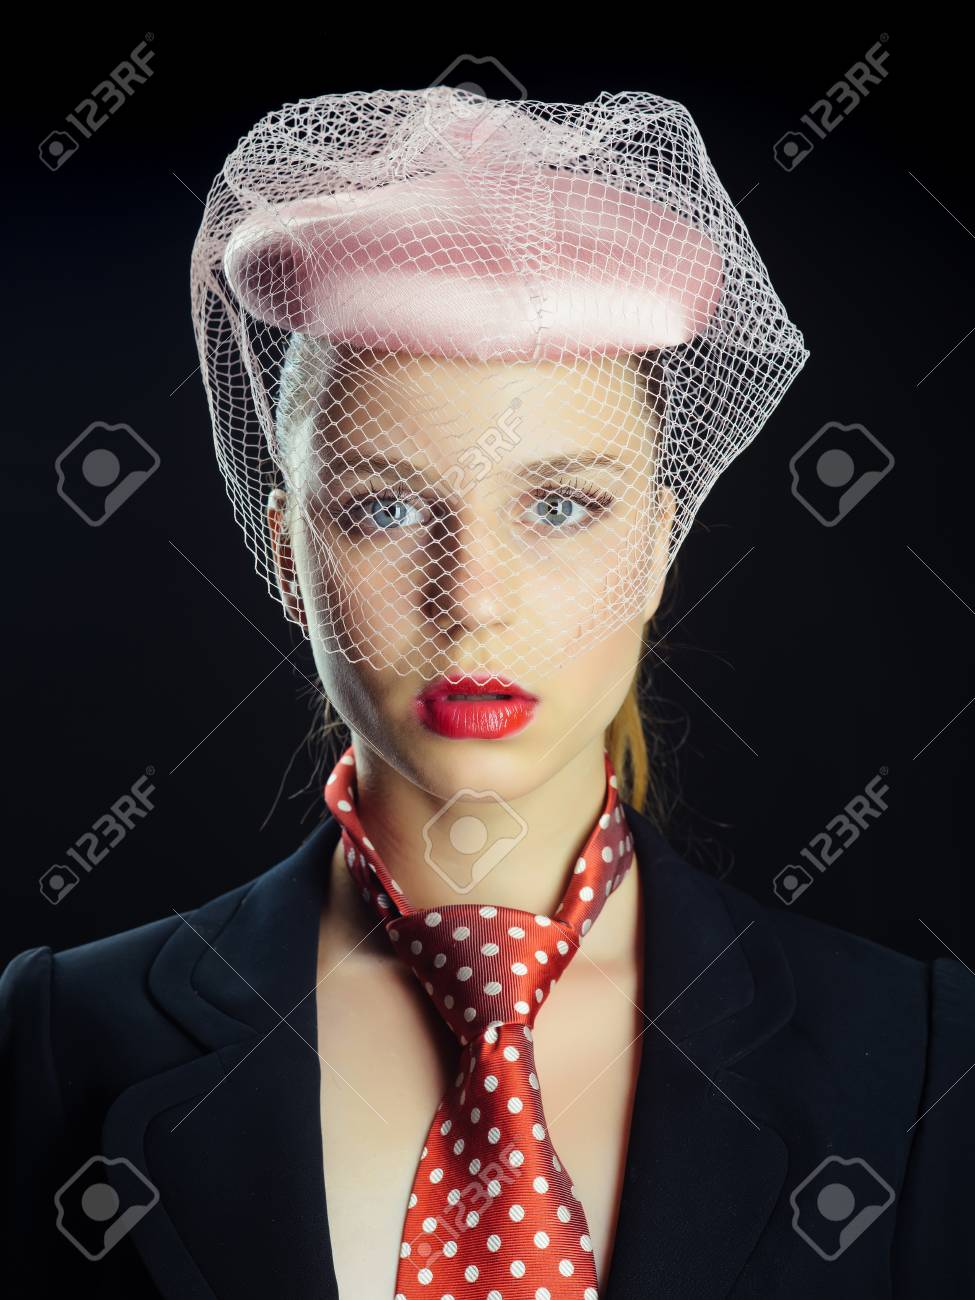 Stock Photo - Woman wearing pink hat with veil. Girl in tie with red dots  on neck. Lady posing on black background. Retro or vintage style concept. 1638551b4f8a